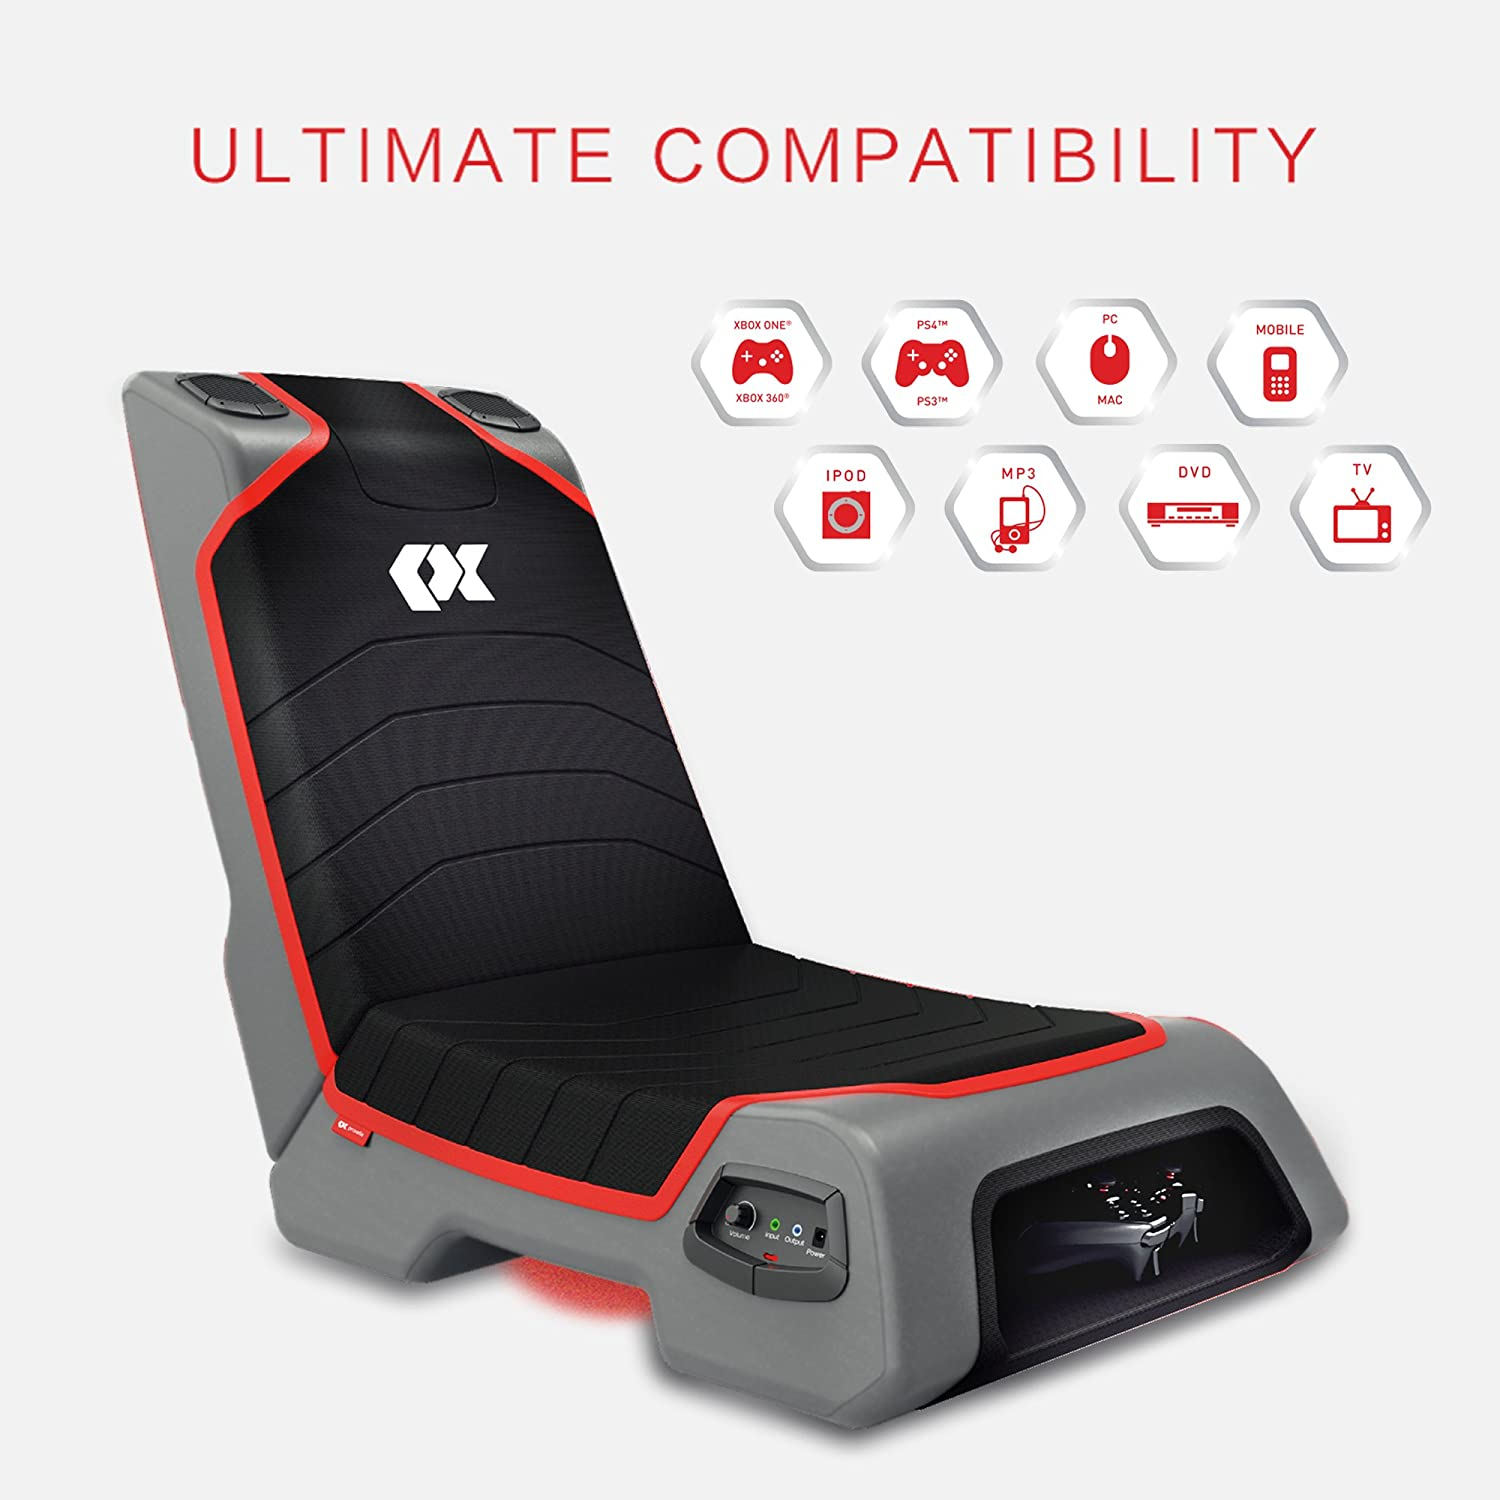 Game chairs for xbox 360 - Amazon Com Proxelle Video Game Chair Dual 3w Speakers Ps4 Ps3 Ps2 Xbox One Xbox 360 Nintendo Wii Connect Through Tv Dvd Ipod Iphone Android And Mp3